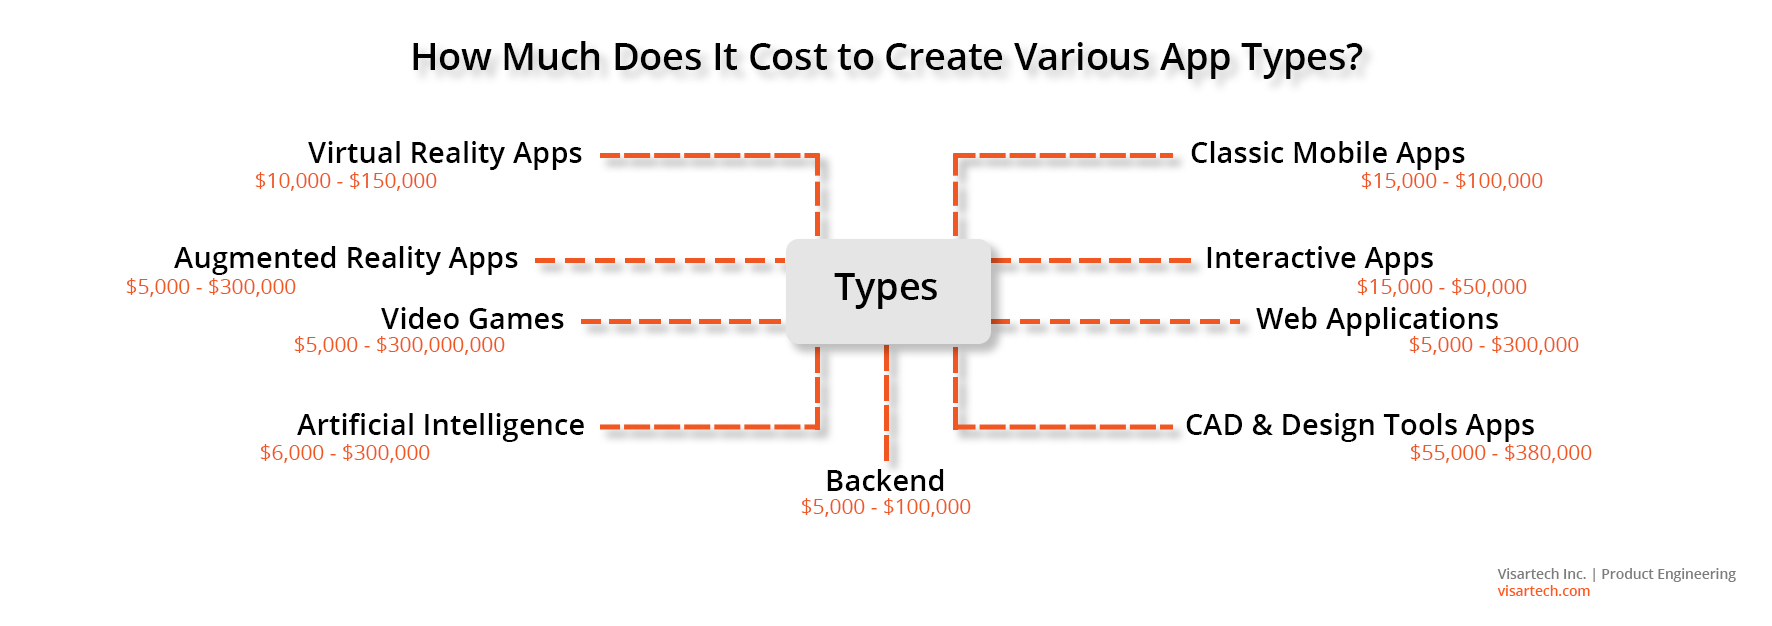 How Much Does It Cost to Create Various App Types - Visartech Blog